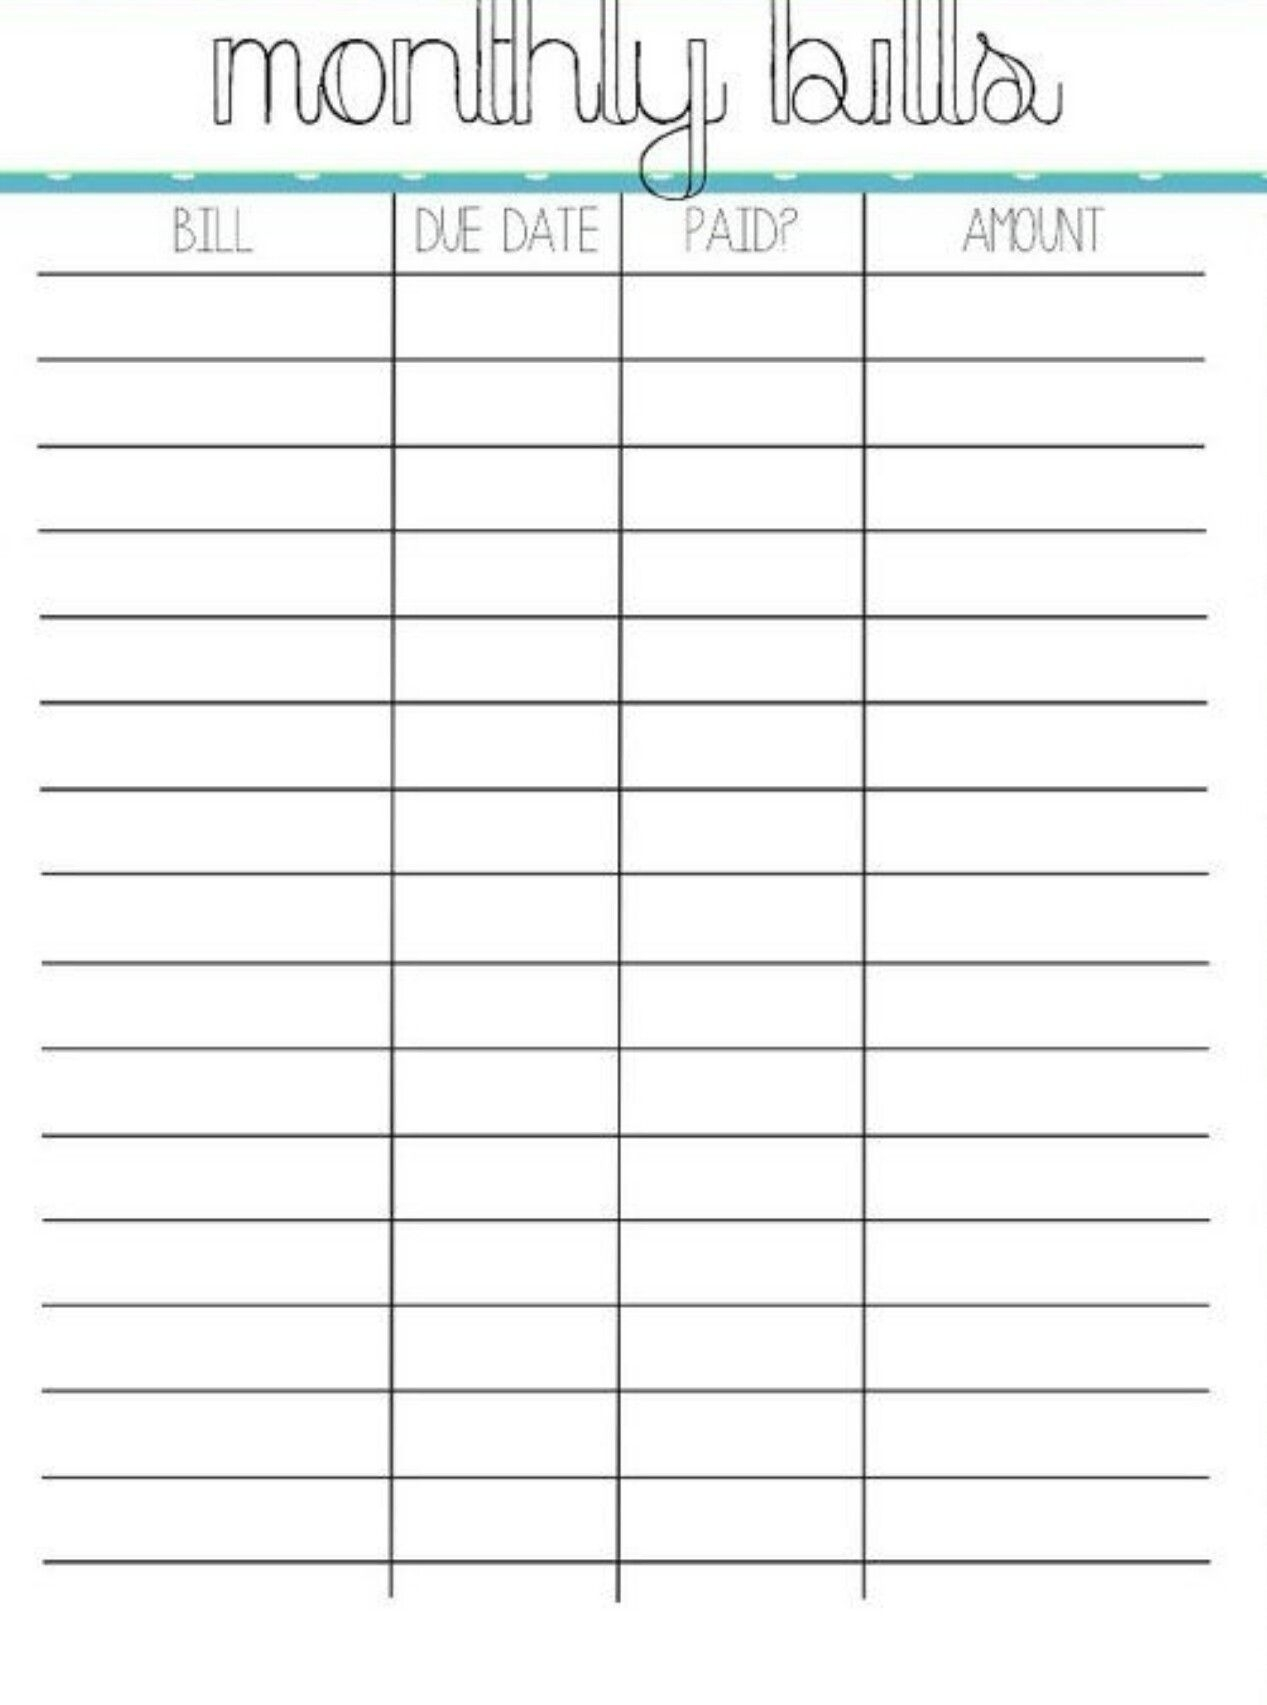 Pincrystal On Bills | Organizing Monthly Bills, Bill inside Free Print Out Bill Organizer